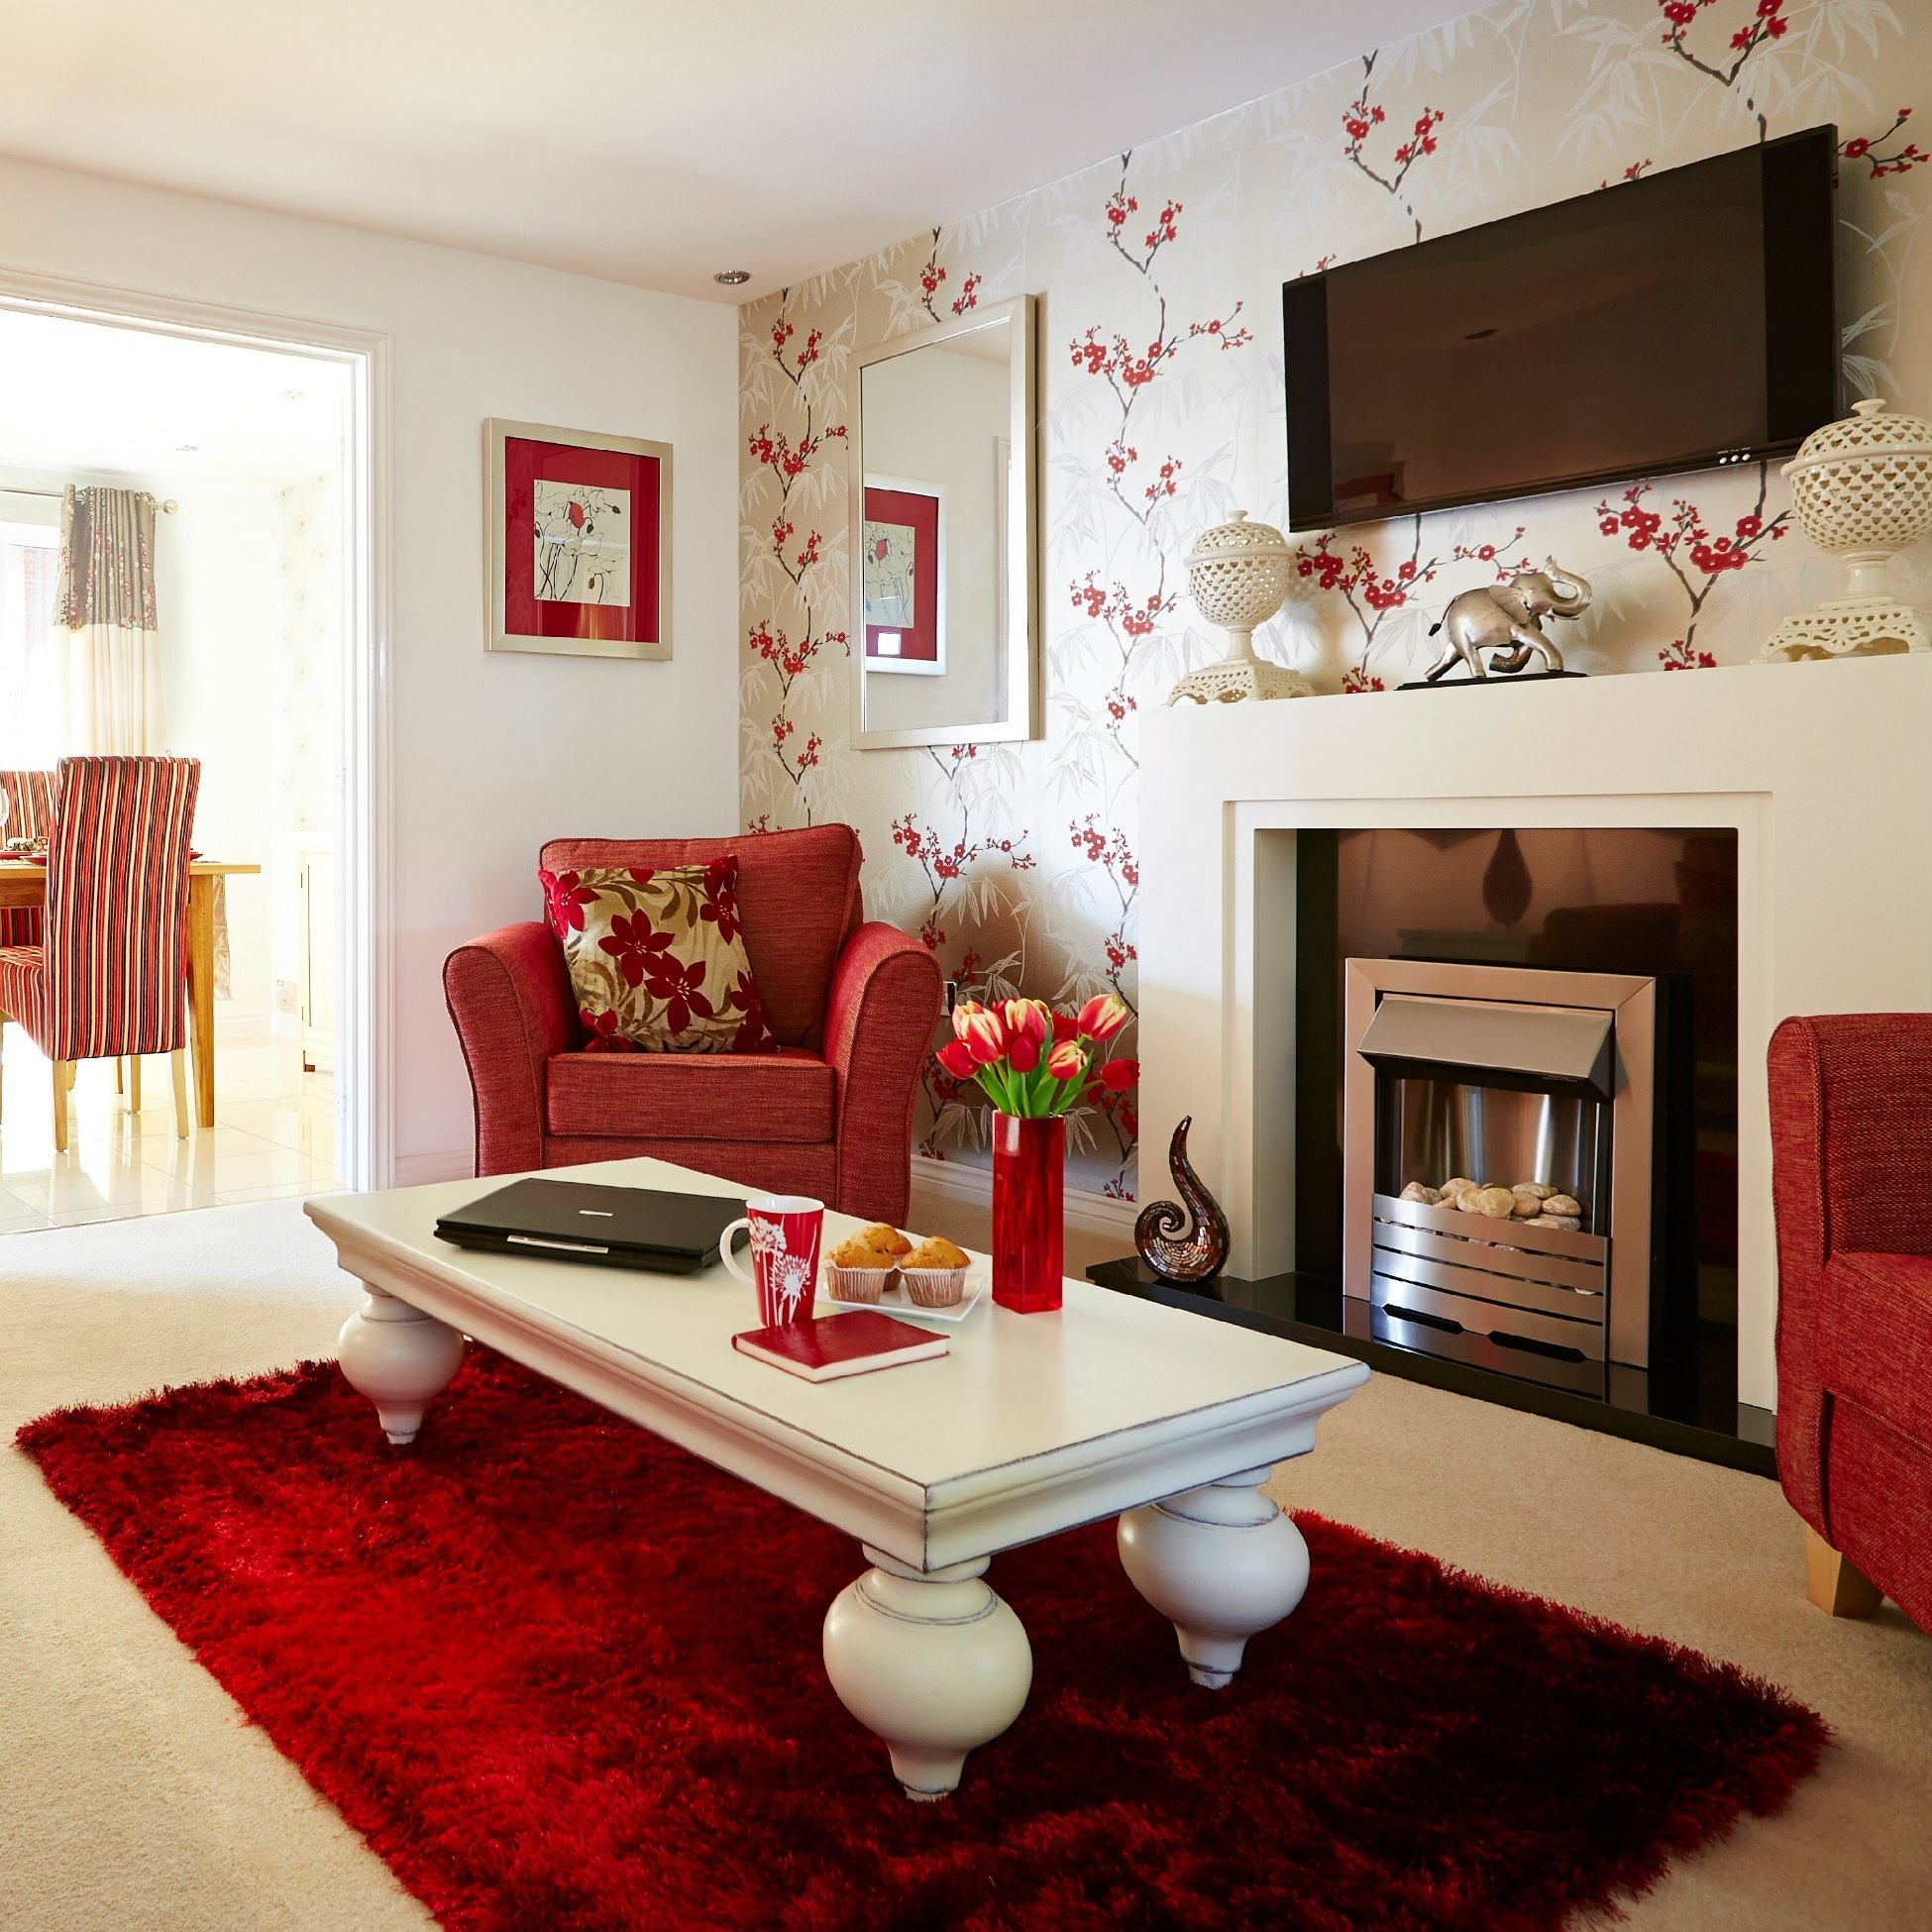 A Plush Red Rug And Ornate Coffee Table, Together With A